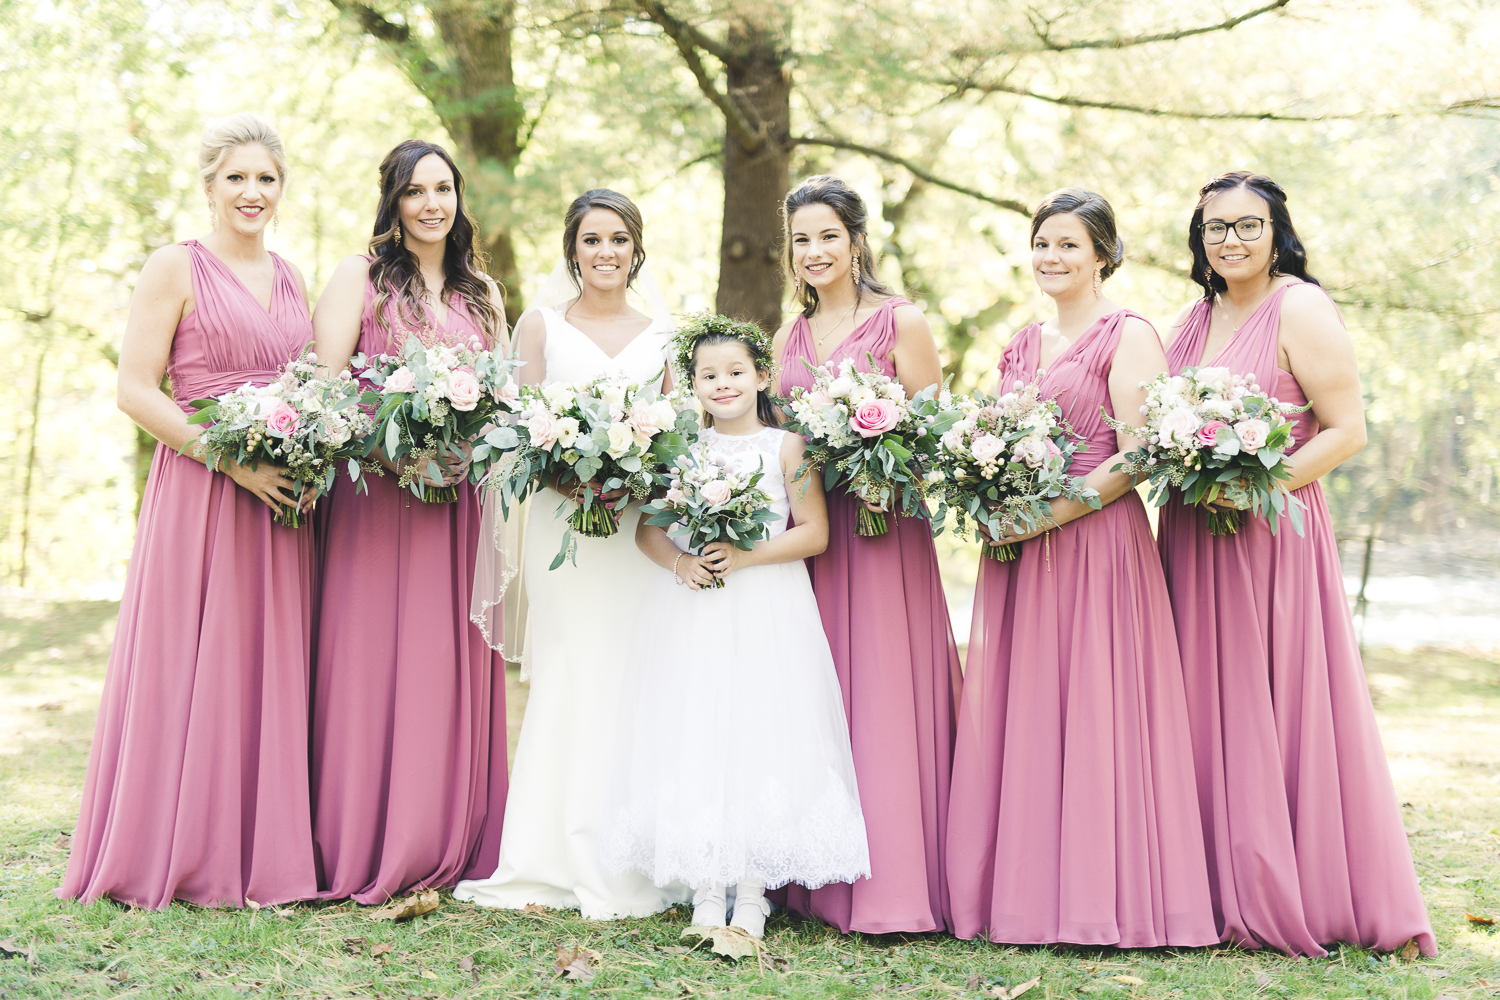 Bride, bridesmaid, and flower girl